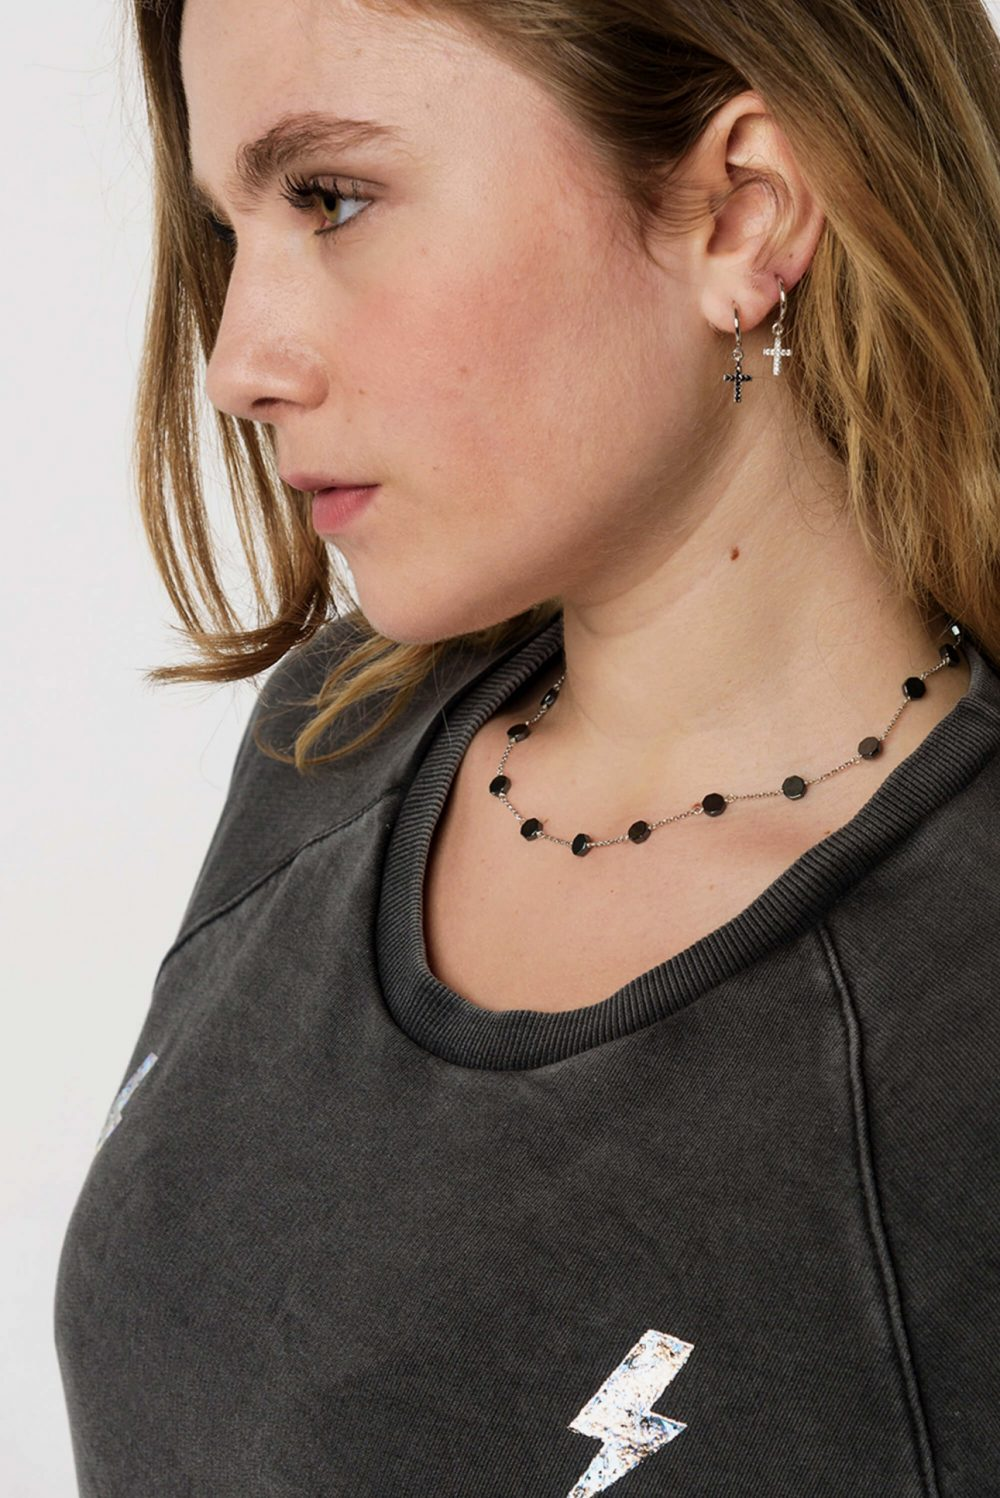 Necklace / Earrings by Dora Syrrou